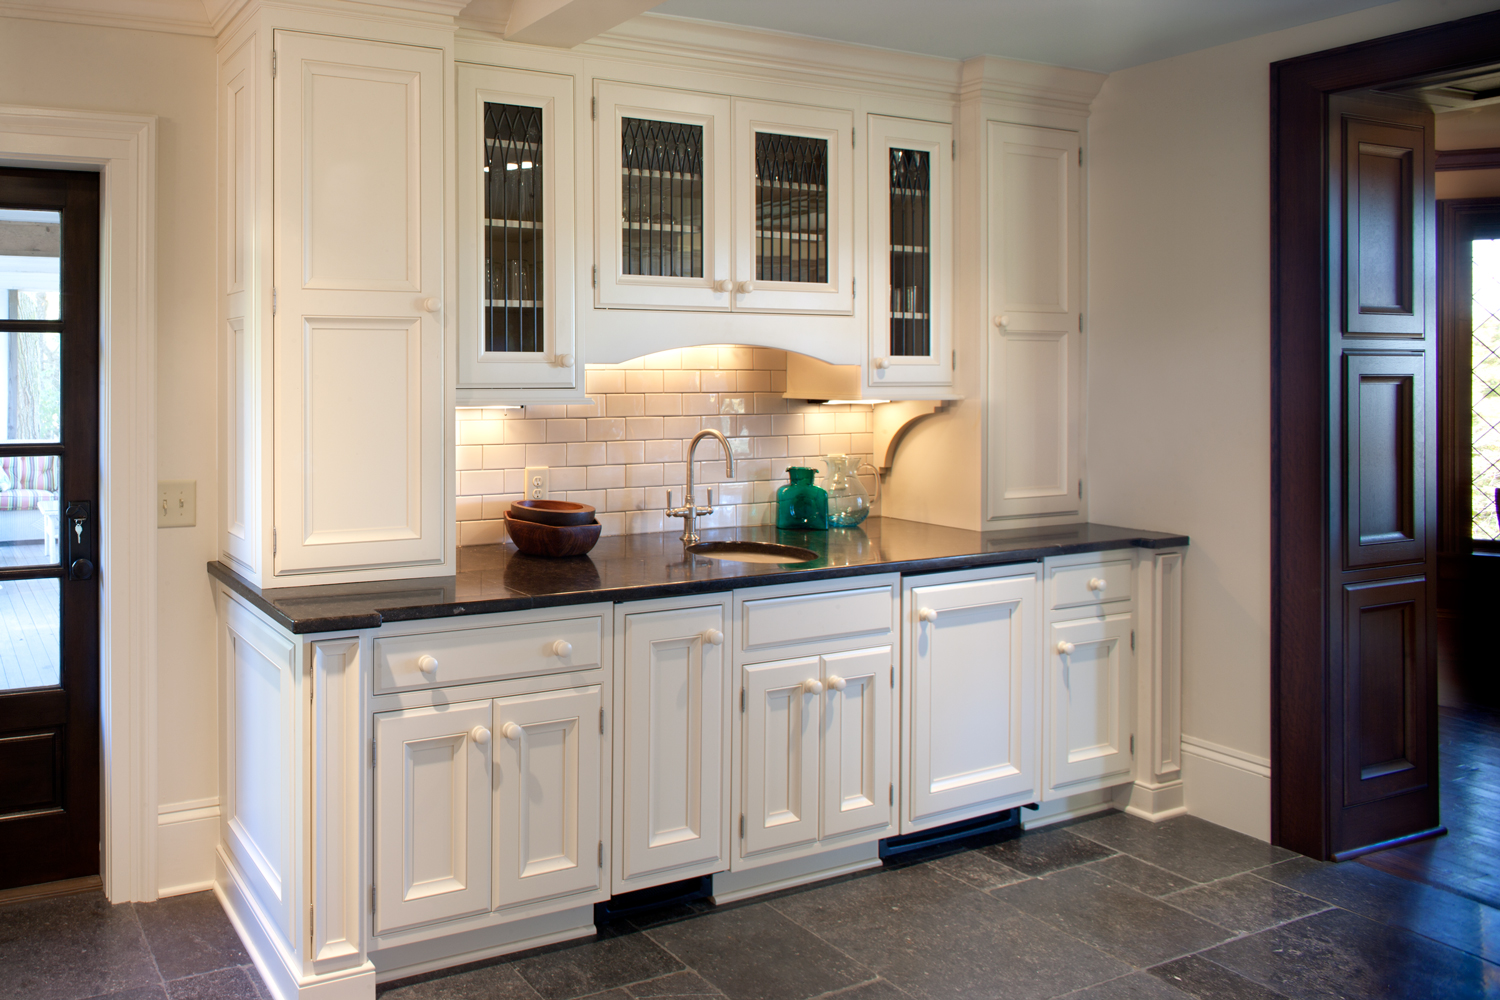 Custom cabinetry carried by beck allen cabinetry interior design center of st louis mo - Kitchen design in small space decoration ...